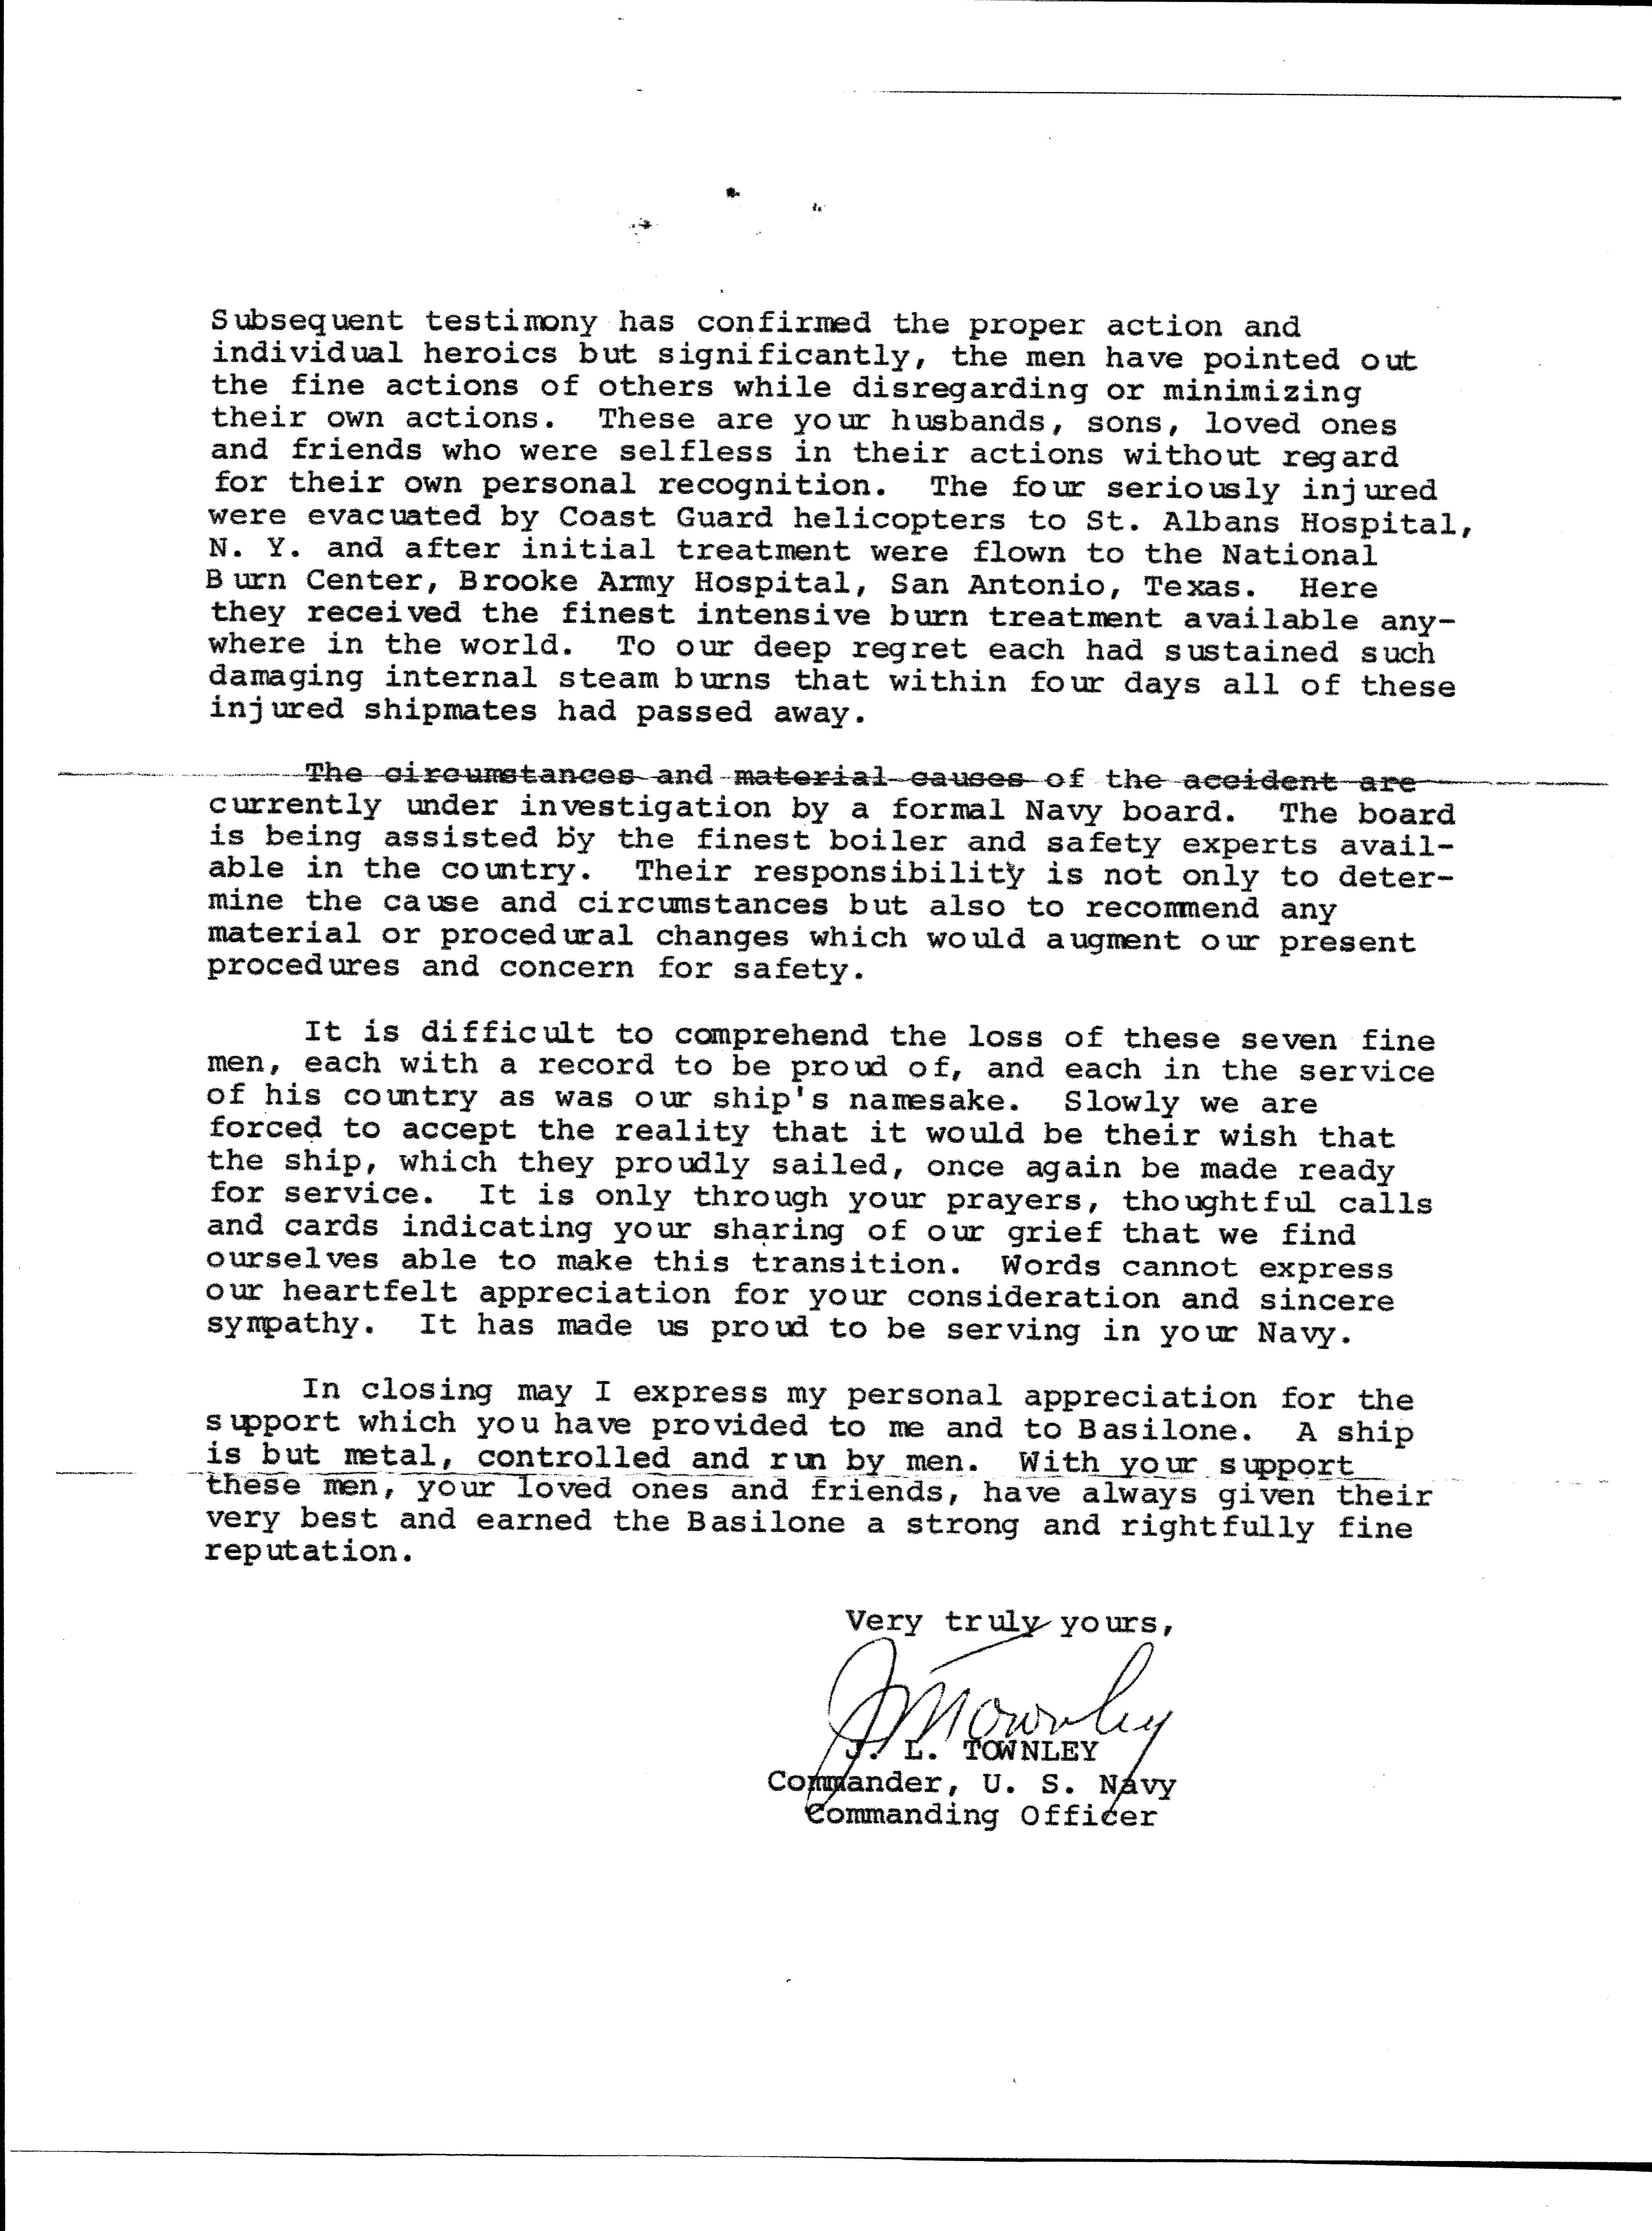 Captain Townley's Accident Letter page 2